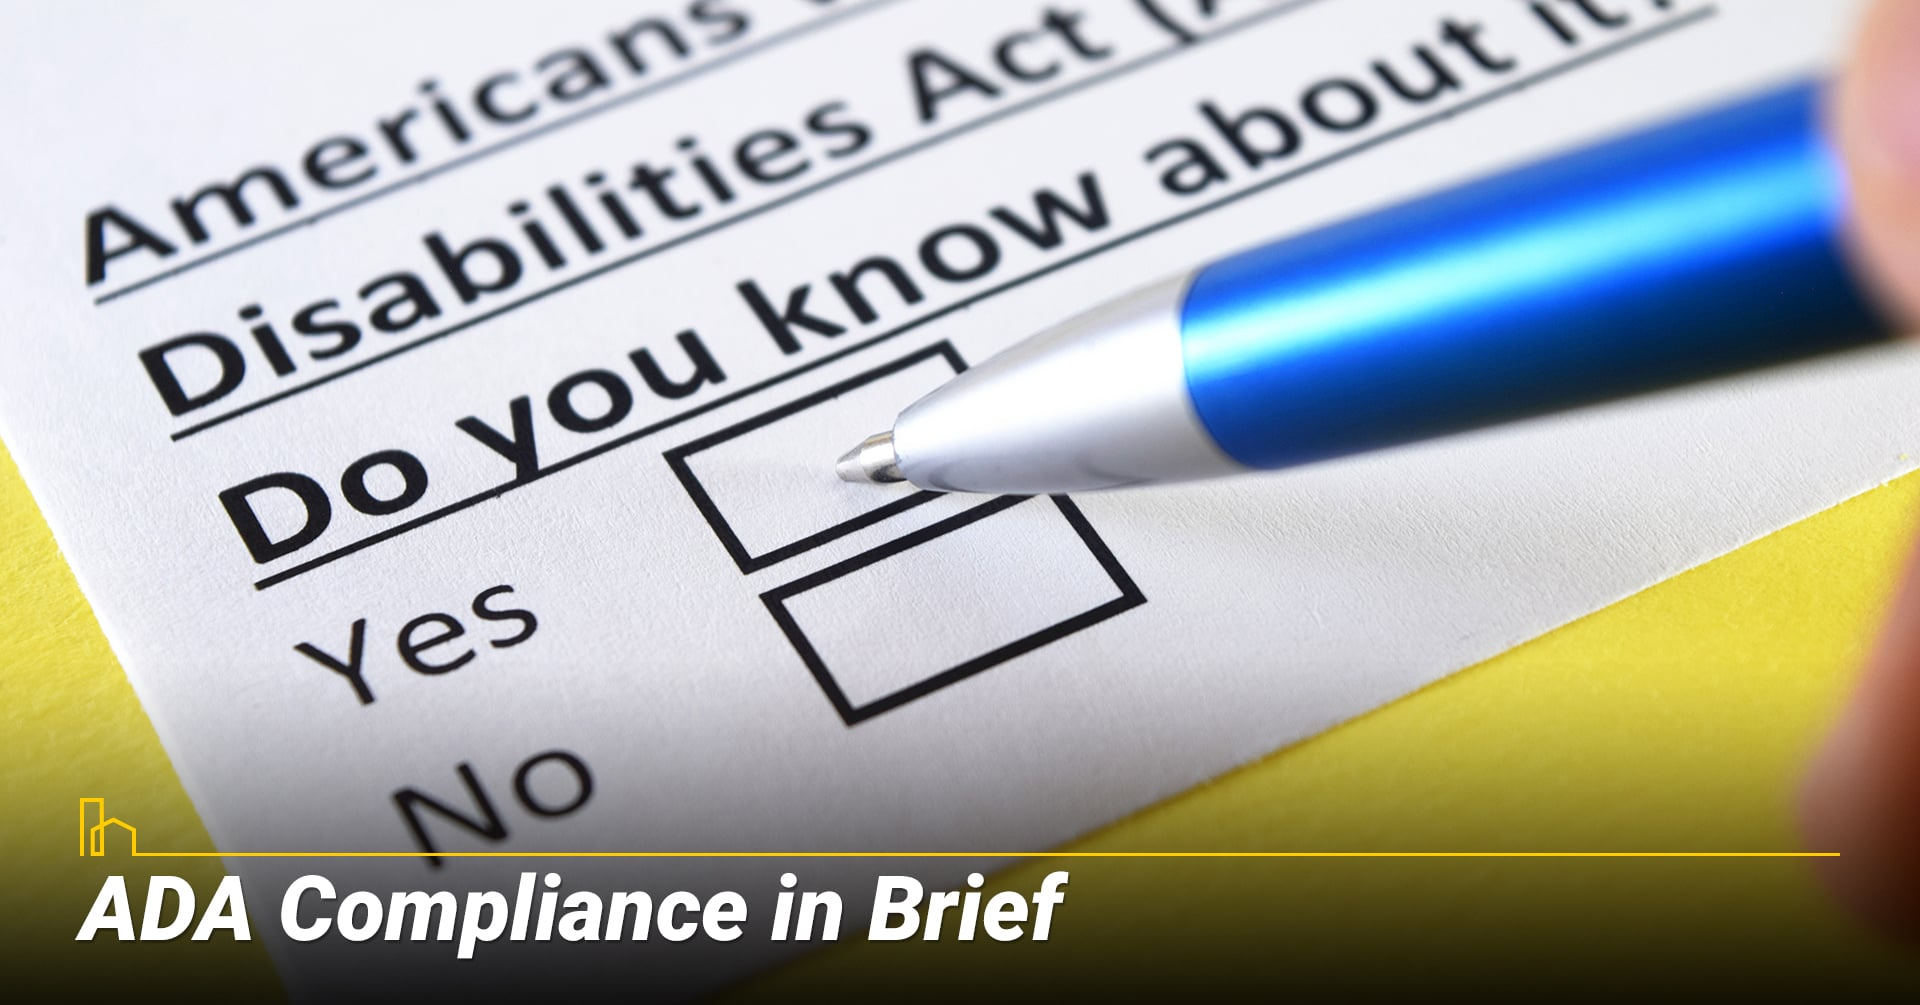 ADA compliance in brief, learn about ADA compliance